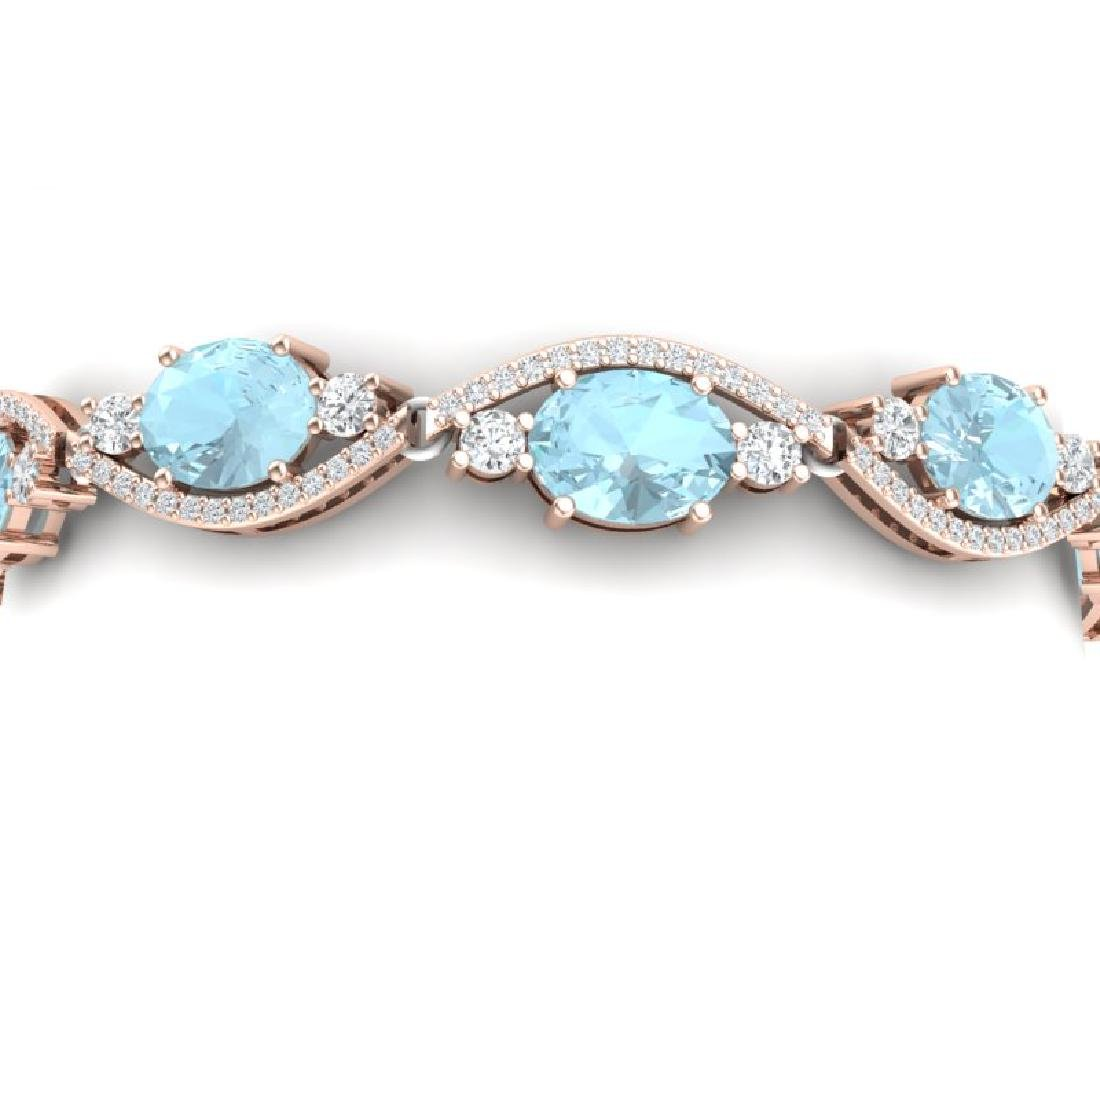 21.6 CTW Royalty Sky Topaz & VS Diamond Bracelet 18K